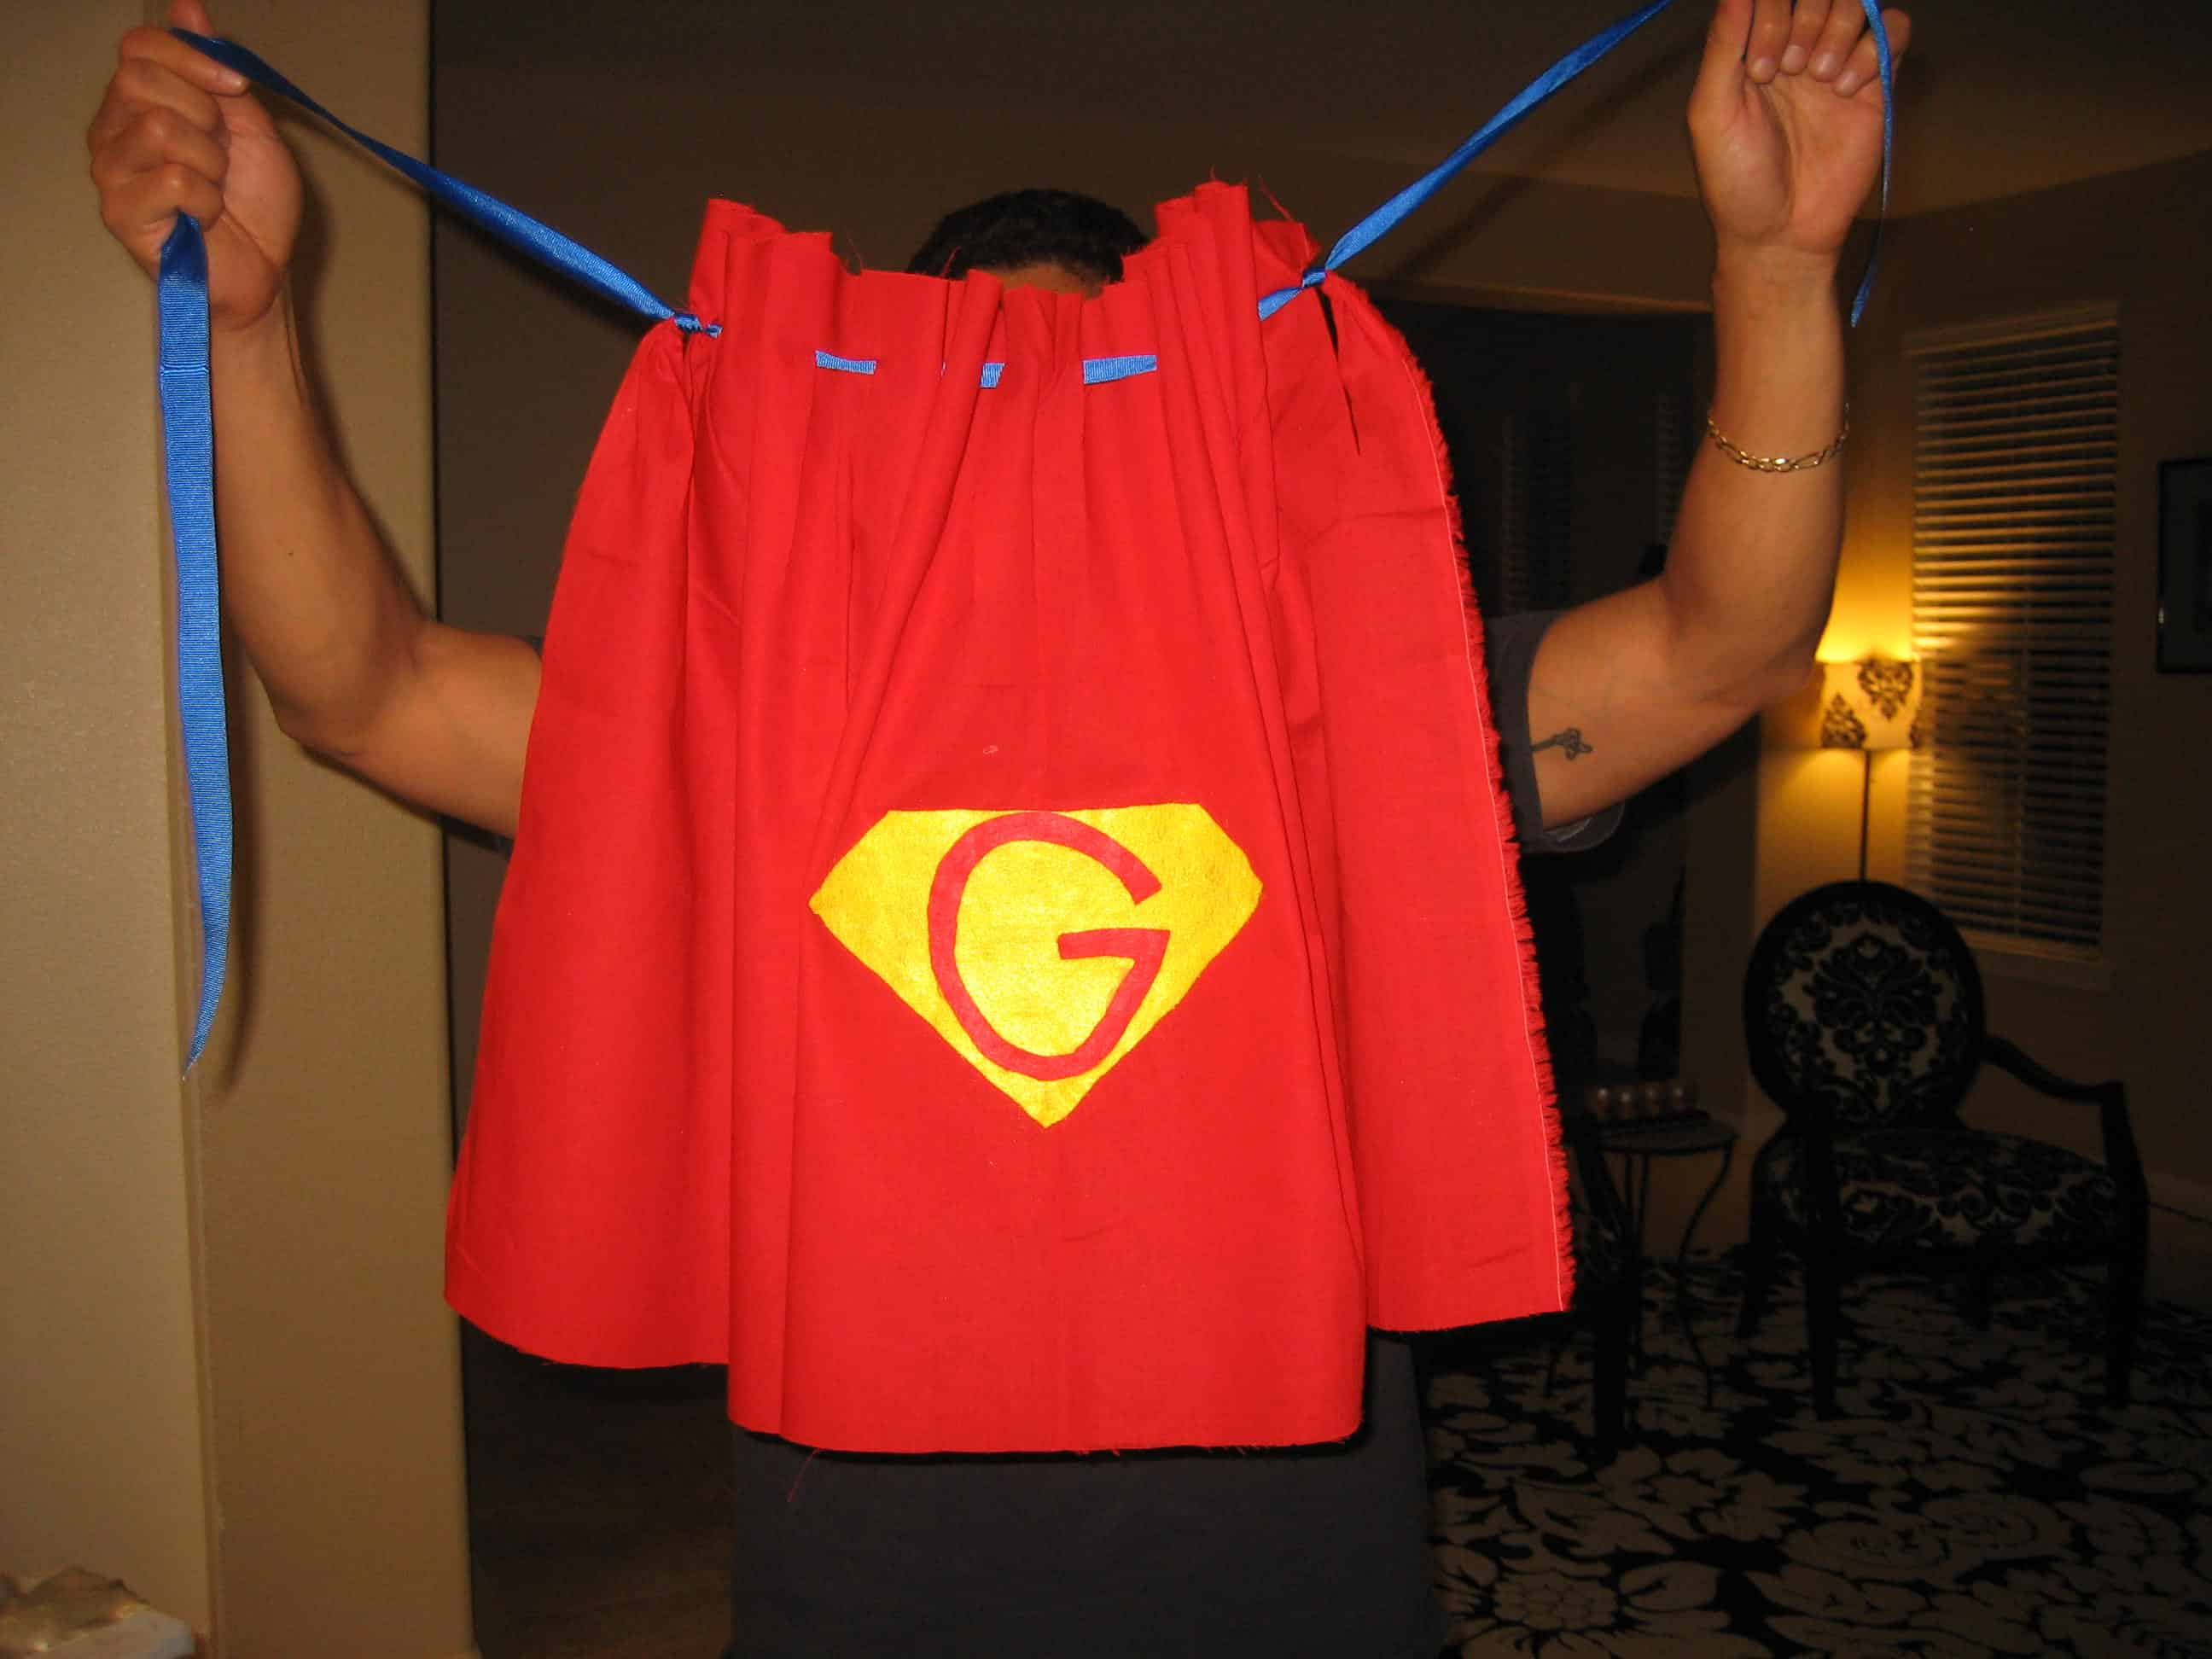 Homemade superhero costumes delightful diy capes for kids 2 no sew ribbon topped cape solutioingenieria Choice Image